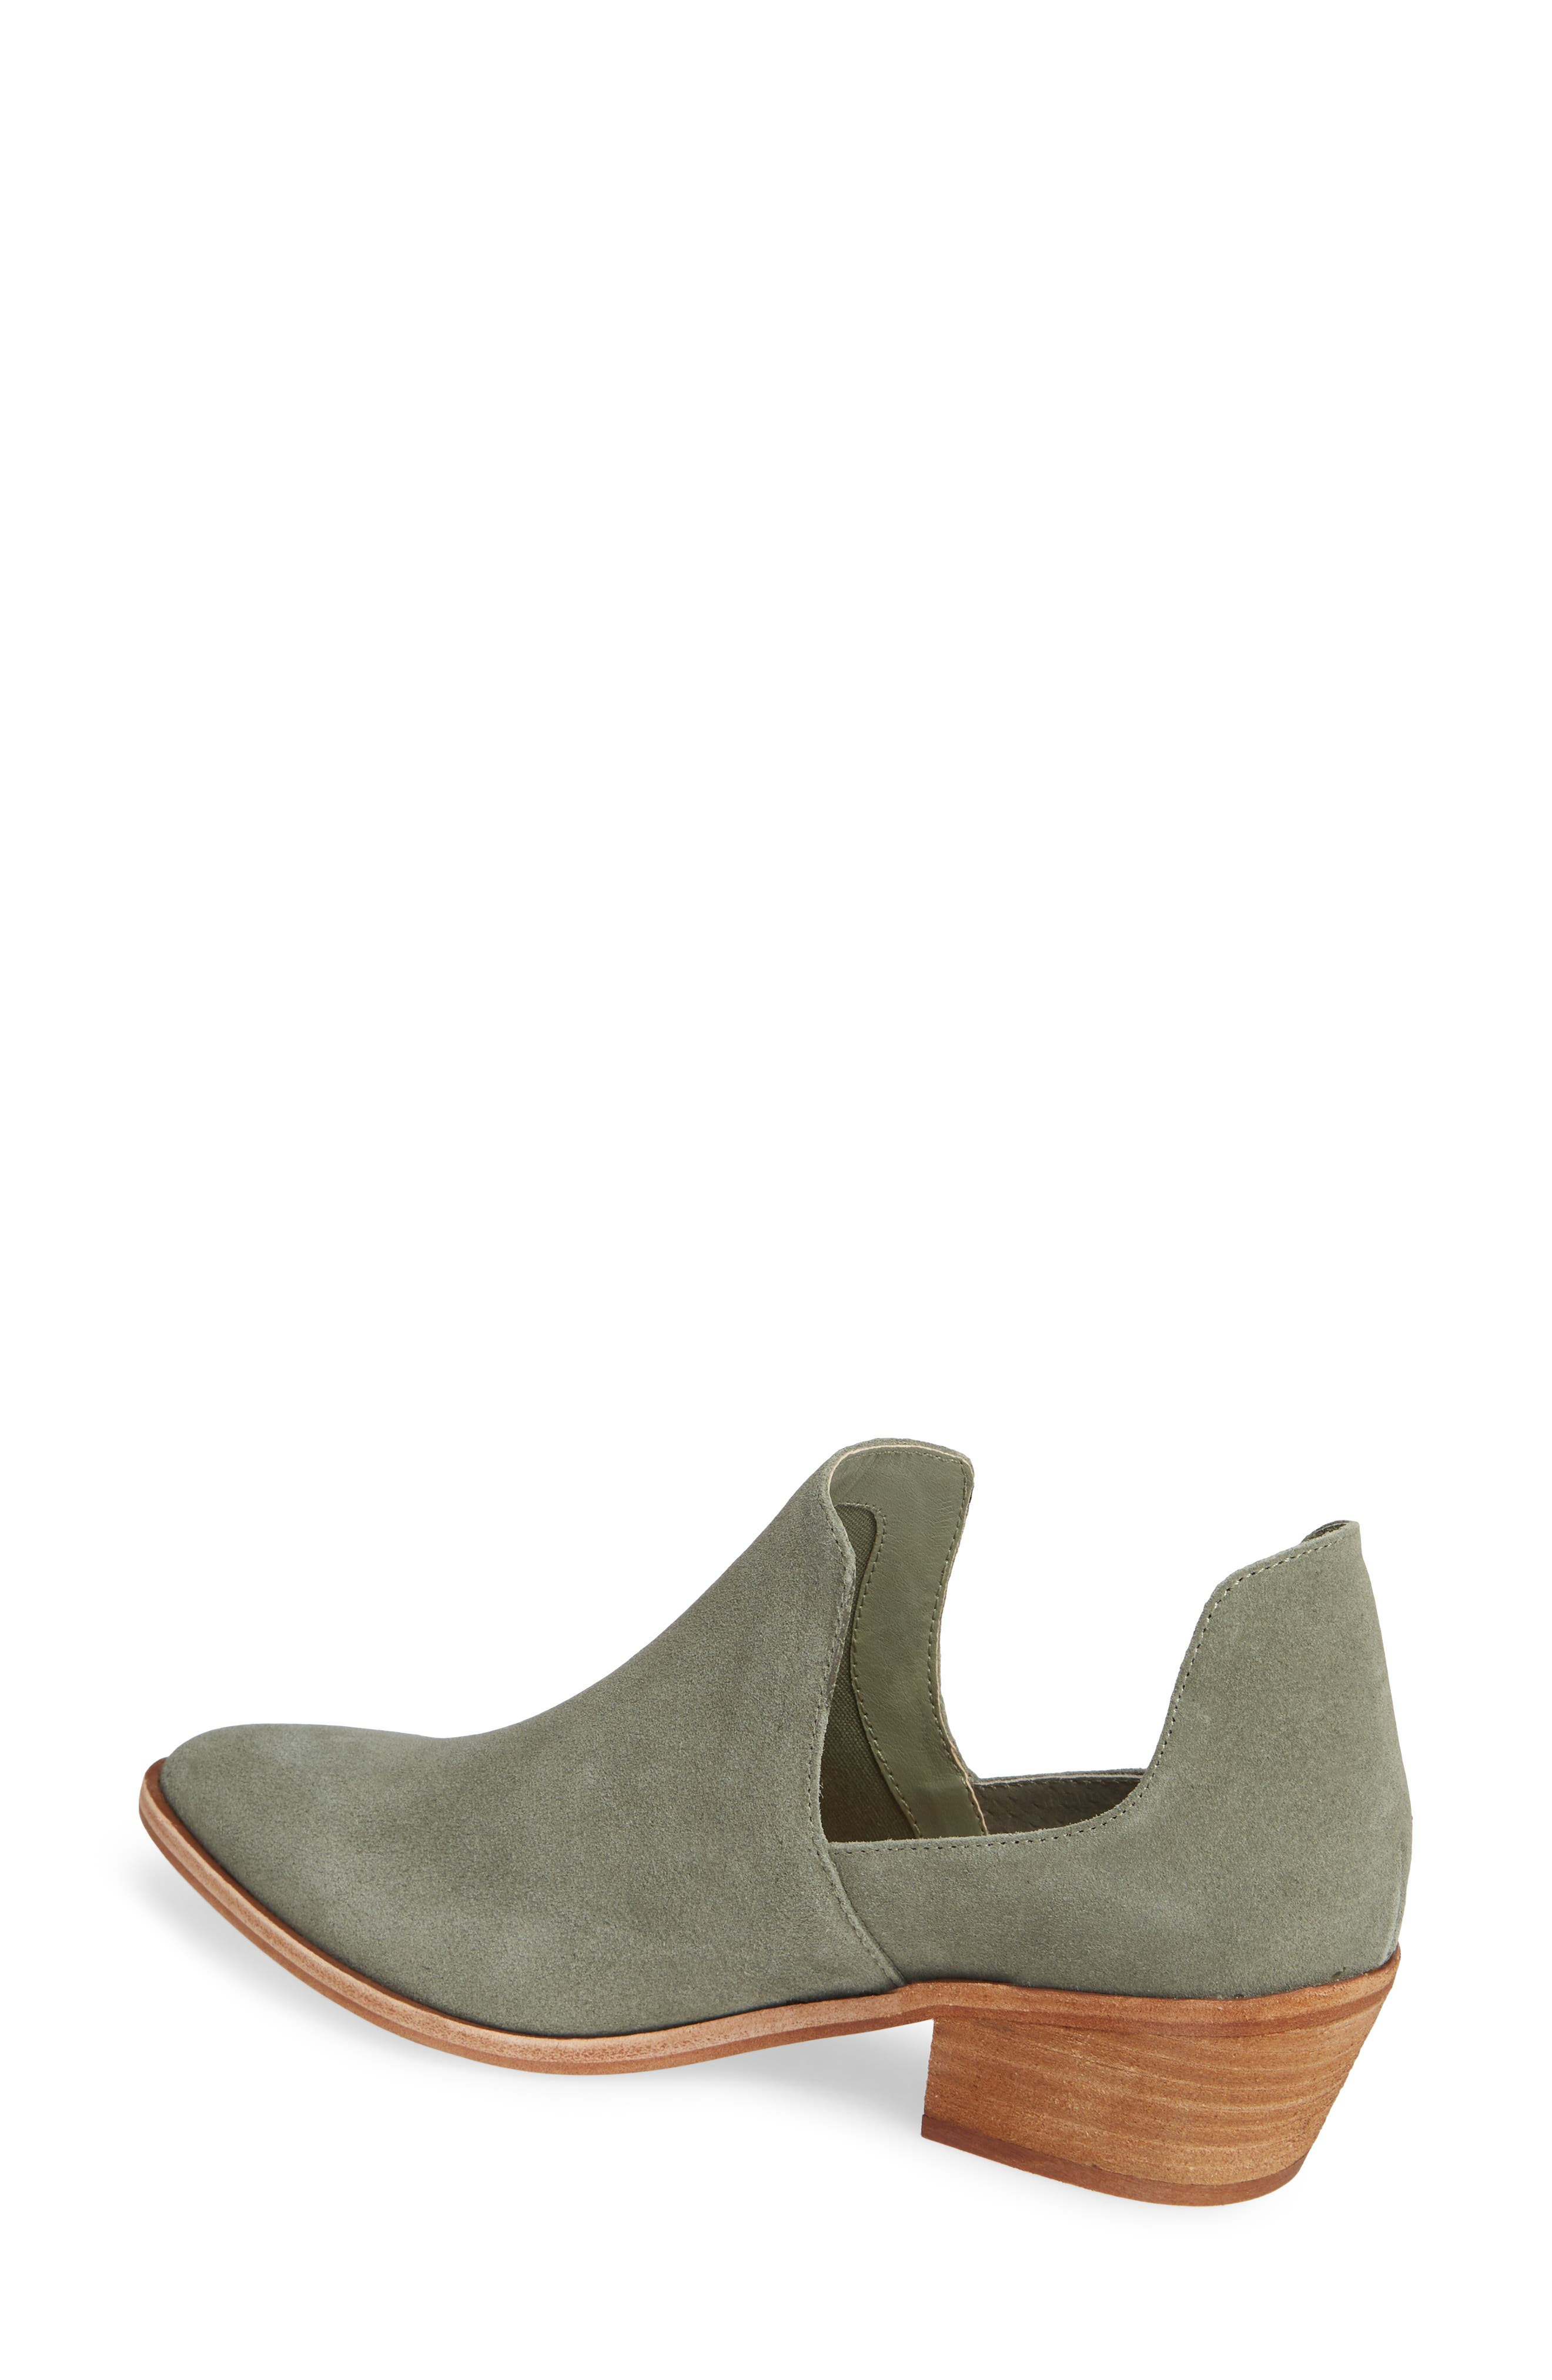 Focus Open Sided Bootie,                             Alternate thumbnail 2, color,                             OLIVE SUEDE